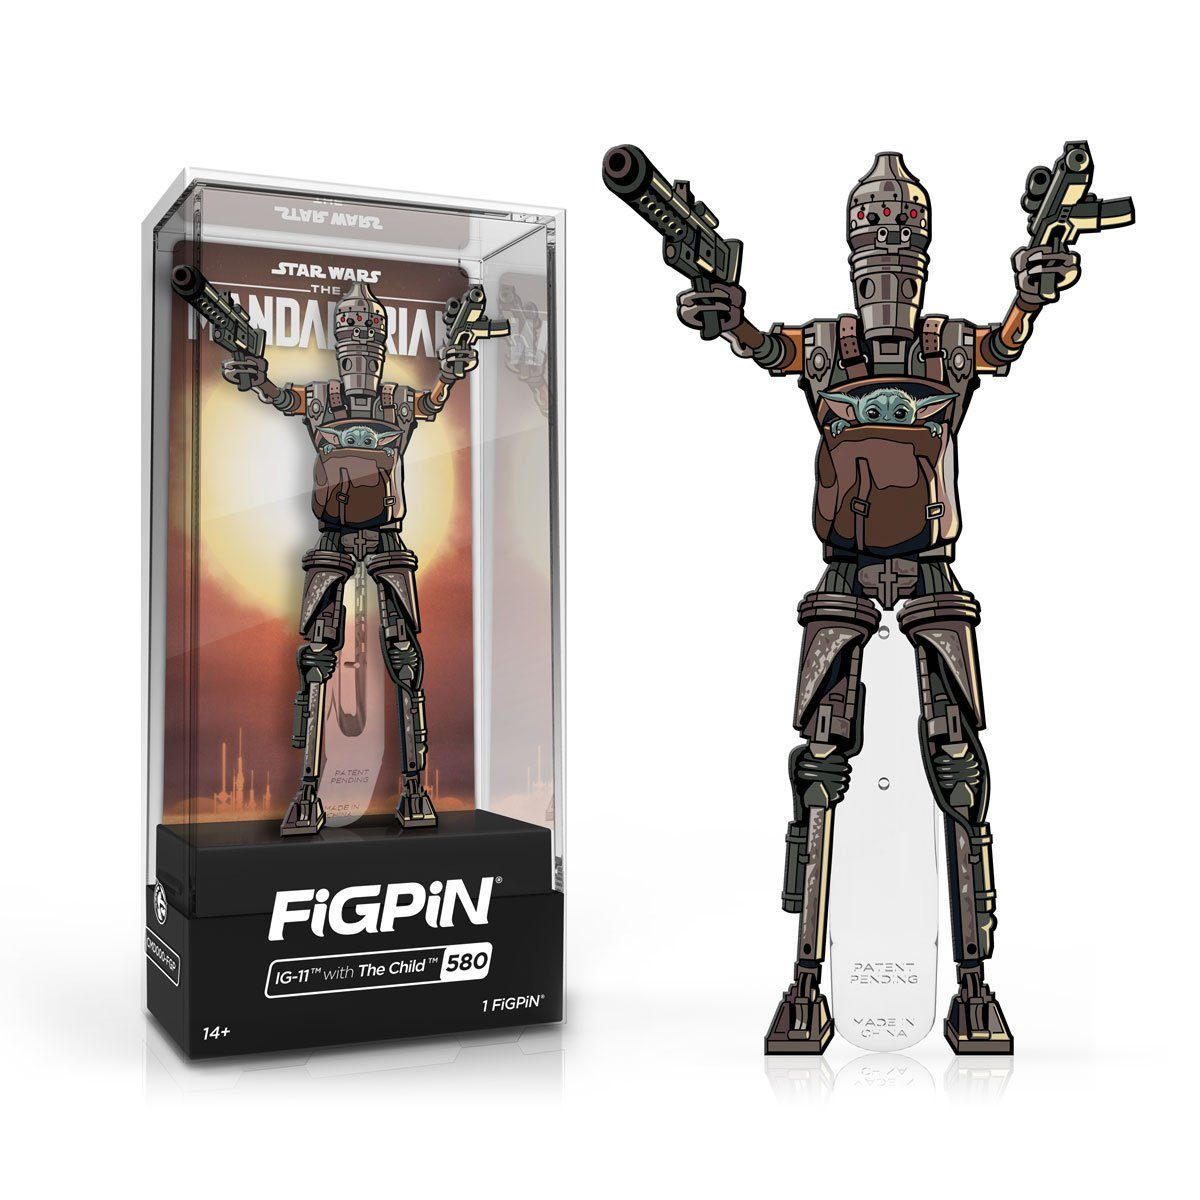 IG-11 with The Child #580 Star Wars: The Mandalorian FiGPiN Classic [PRE-ORDER] FiGPiN Classic FiGPiN